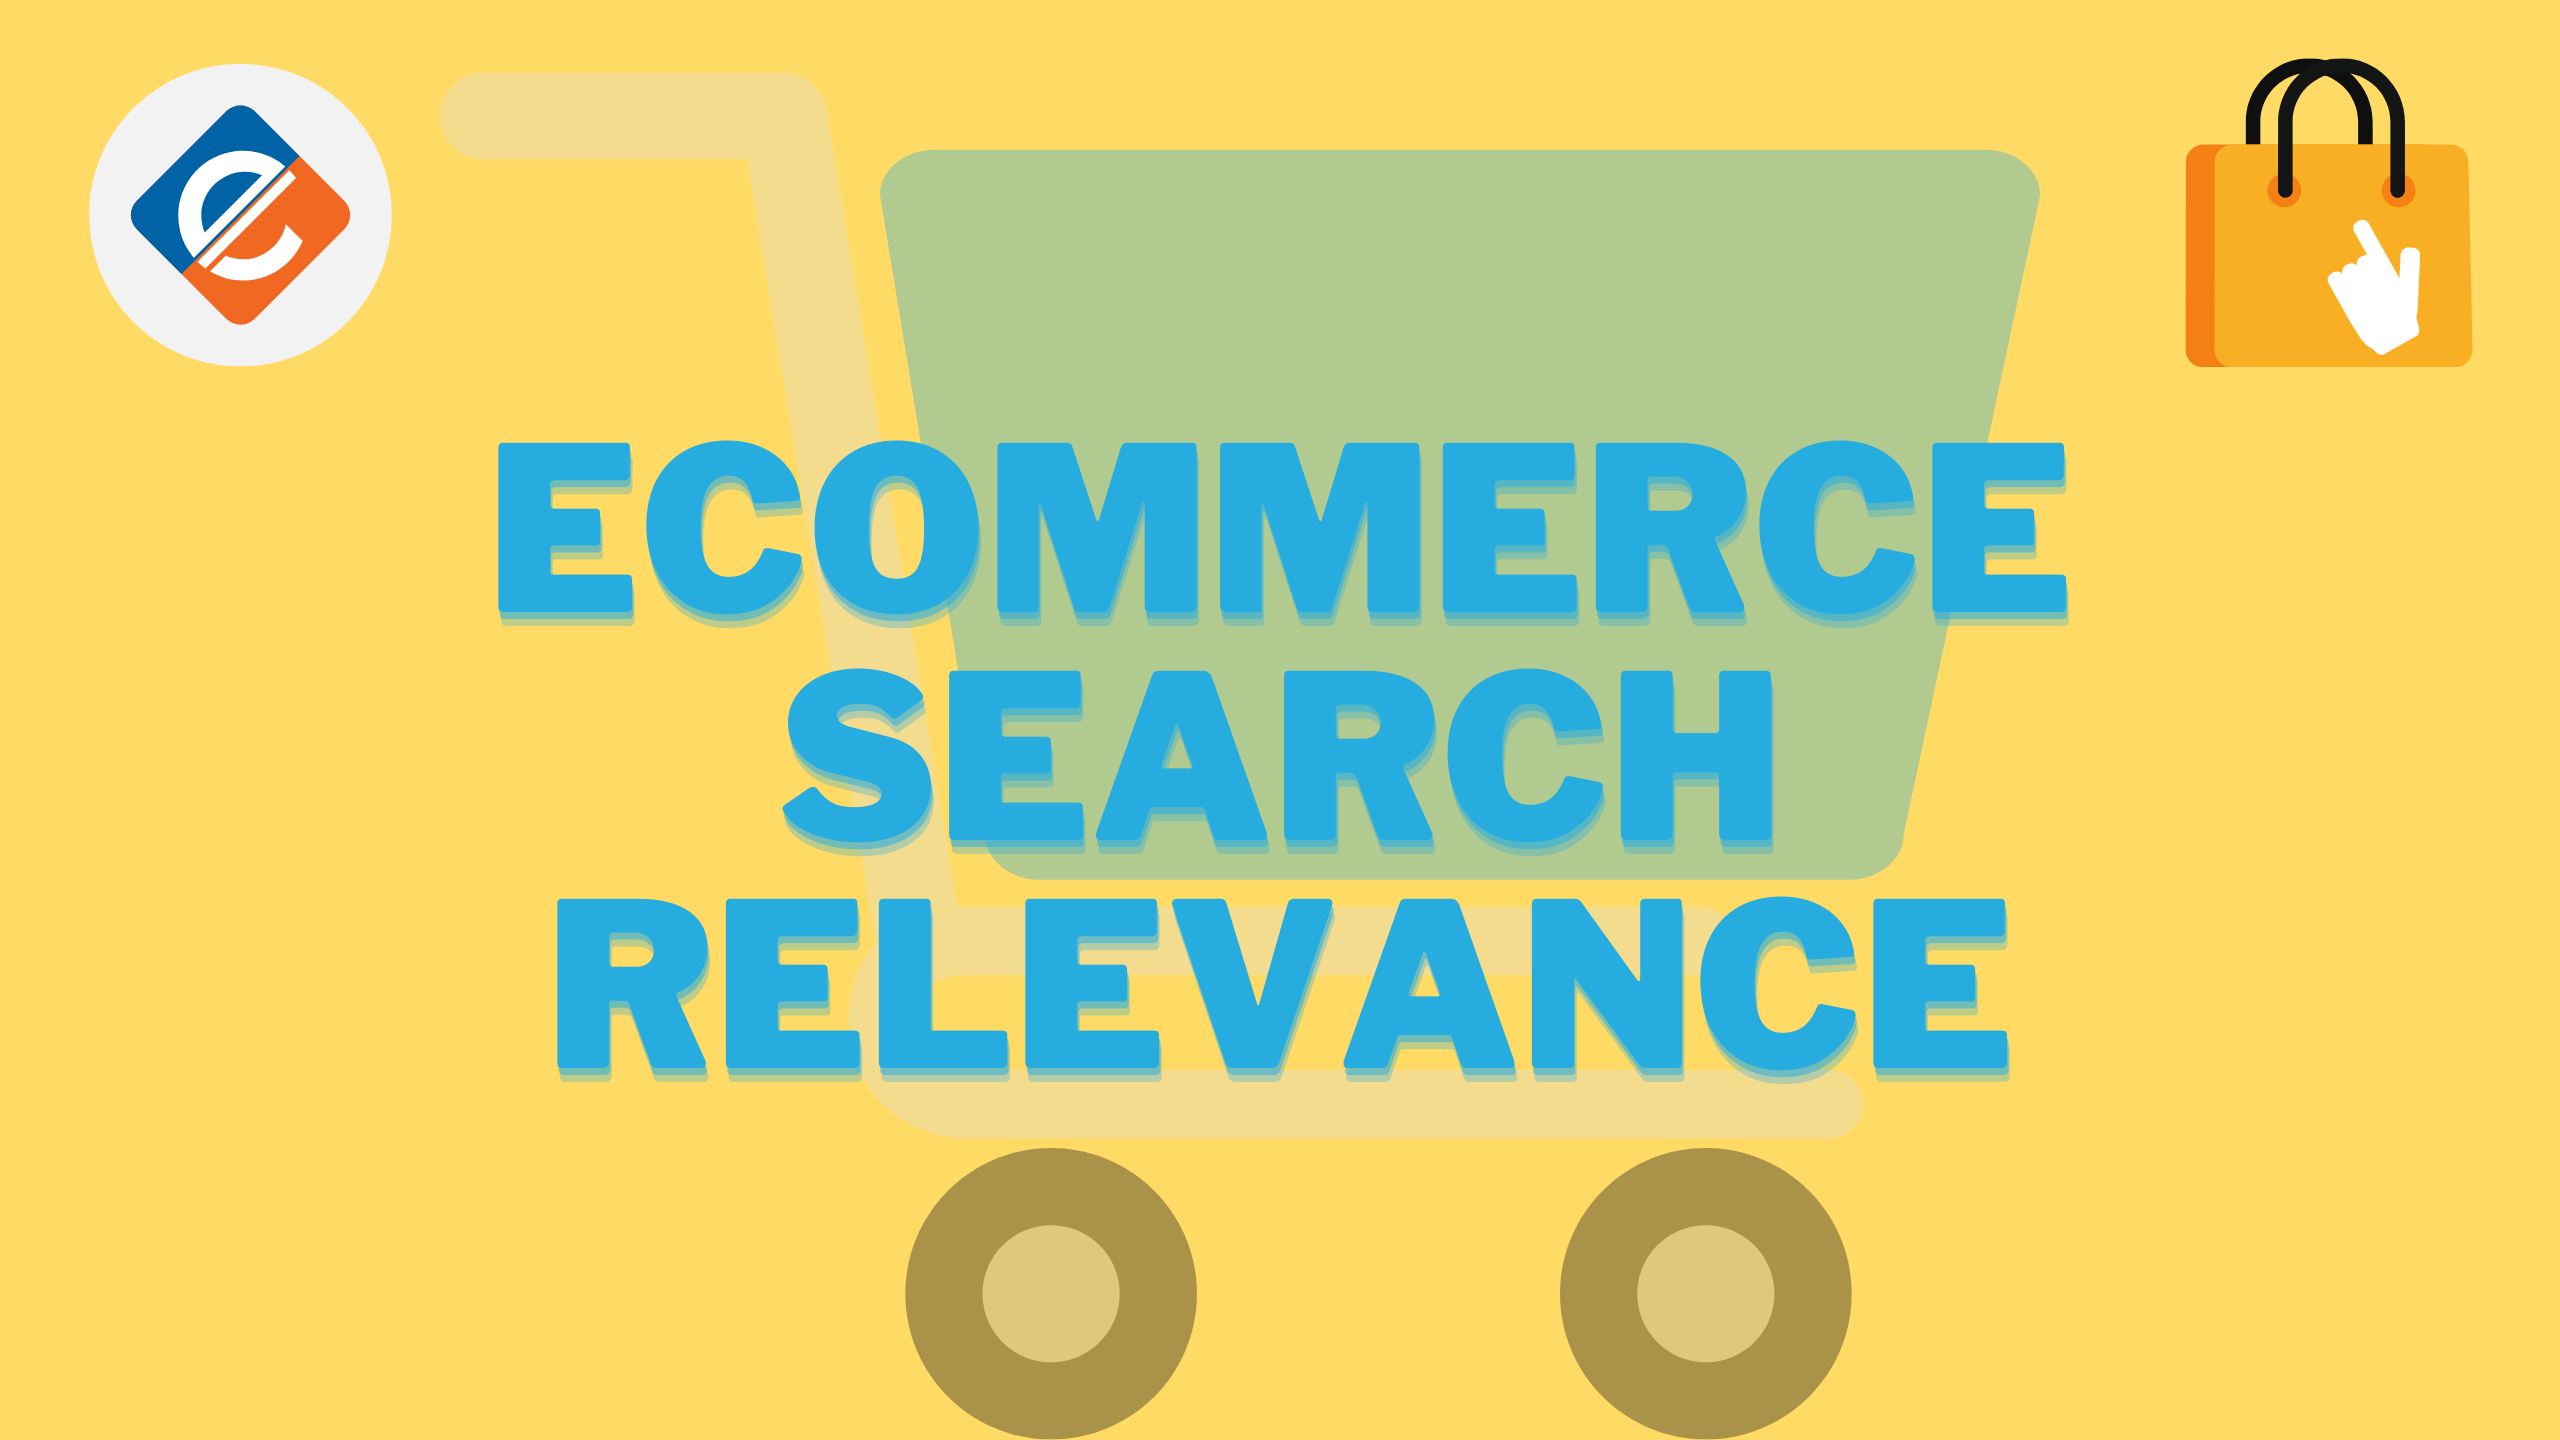 ecommerce search relevance